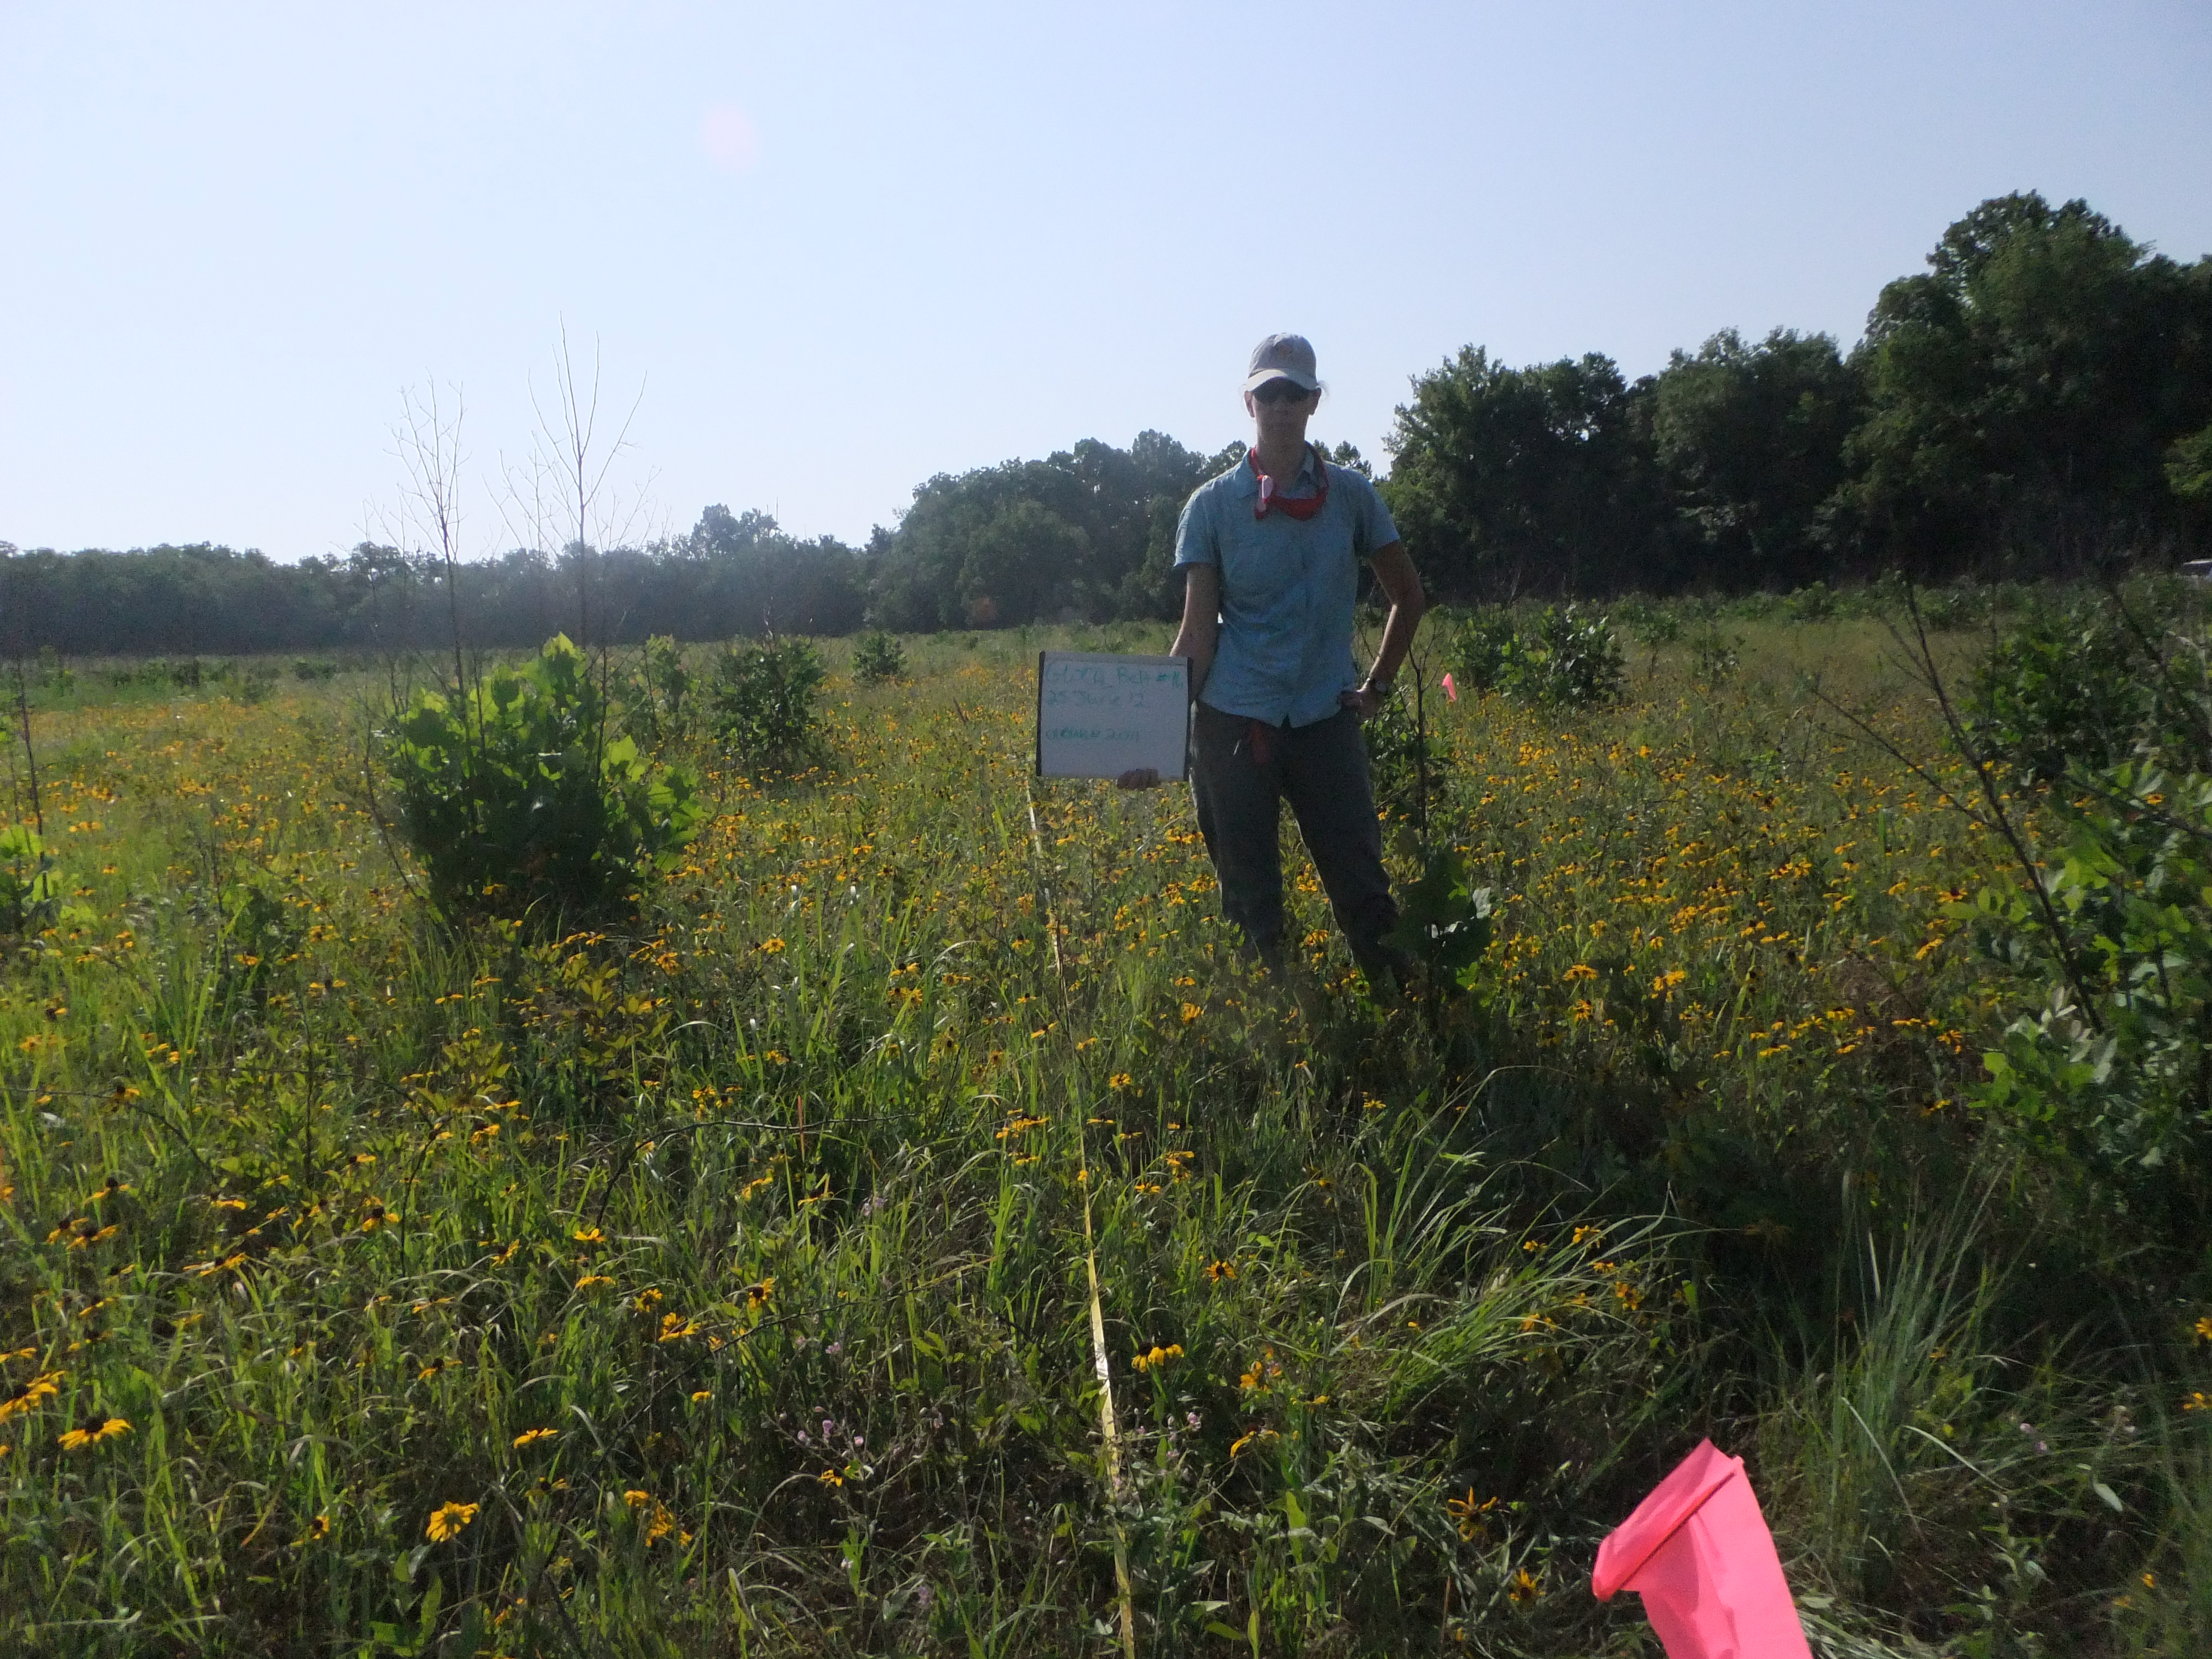 Sherry Leis poses for a photopoint shot while monitoring vegetation in the prairie at George Washington Carver National Monument.